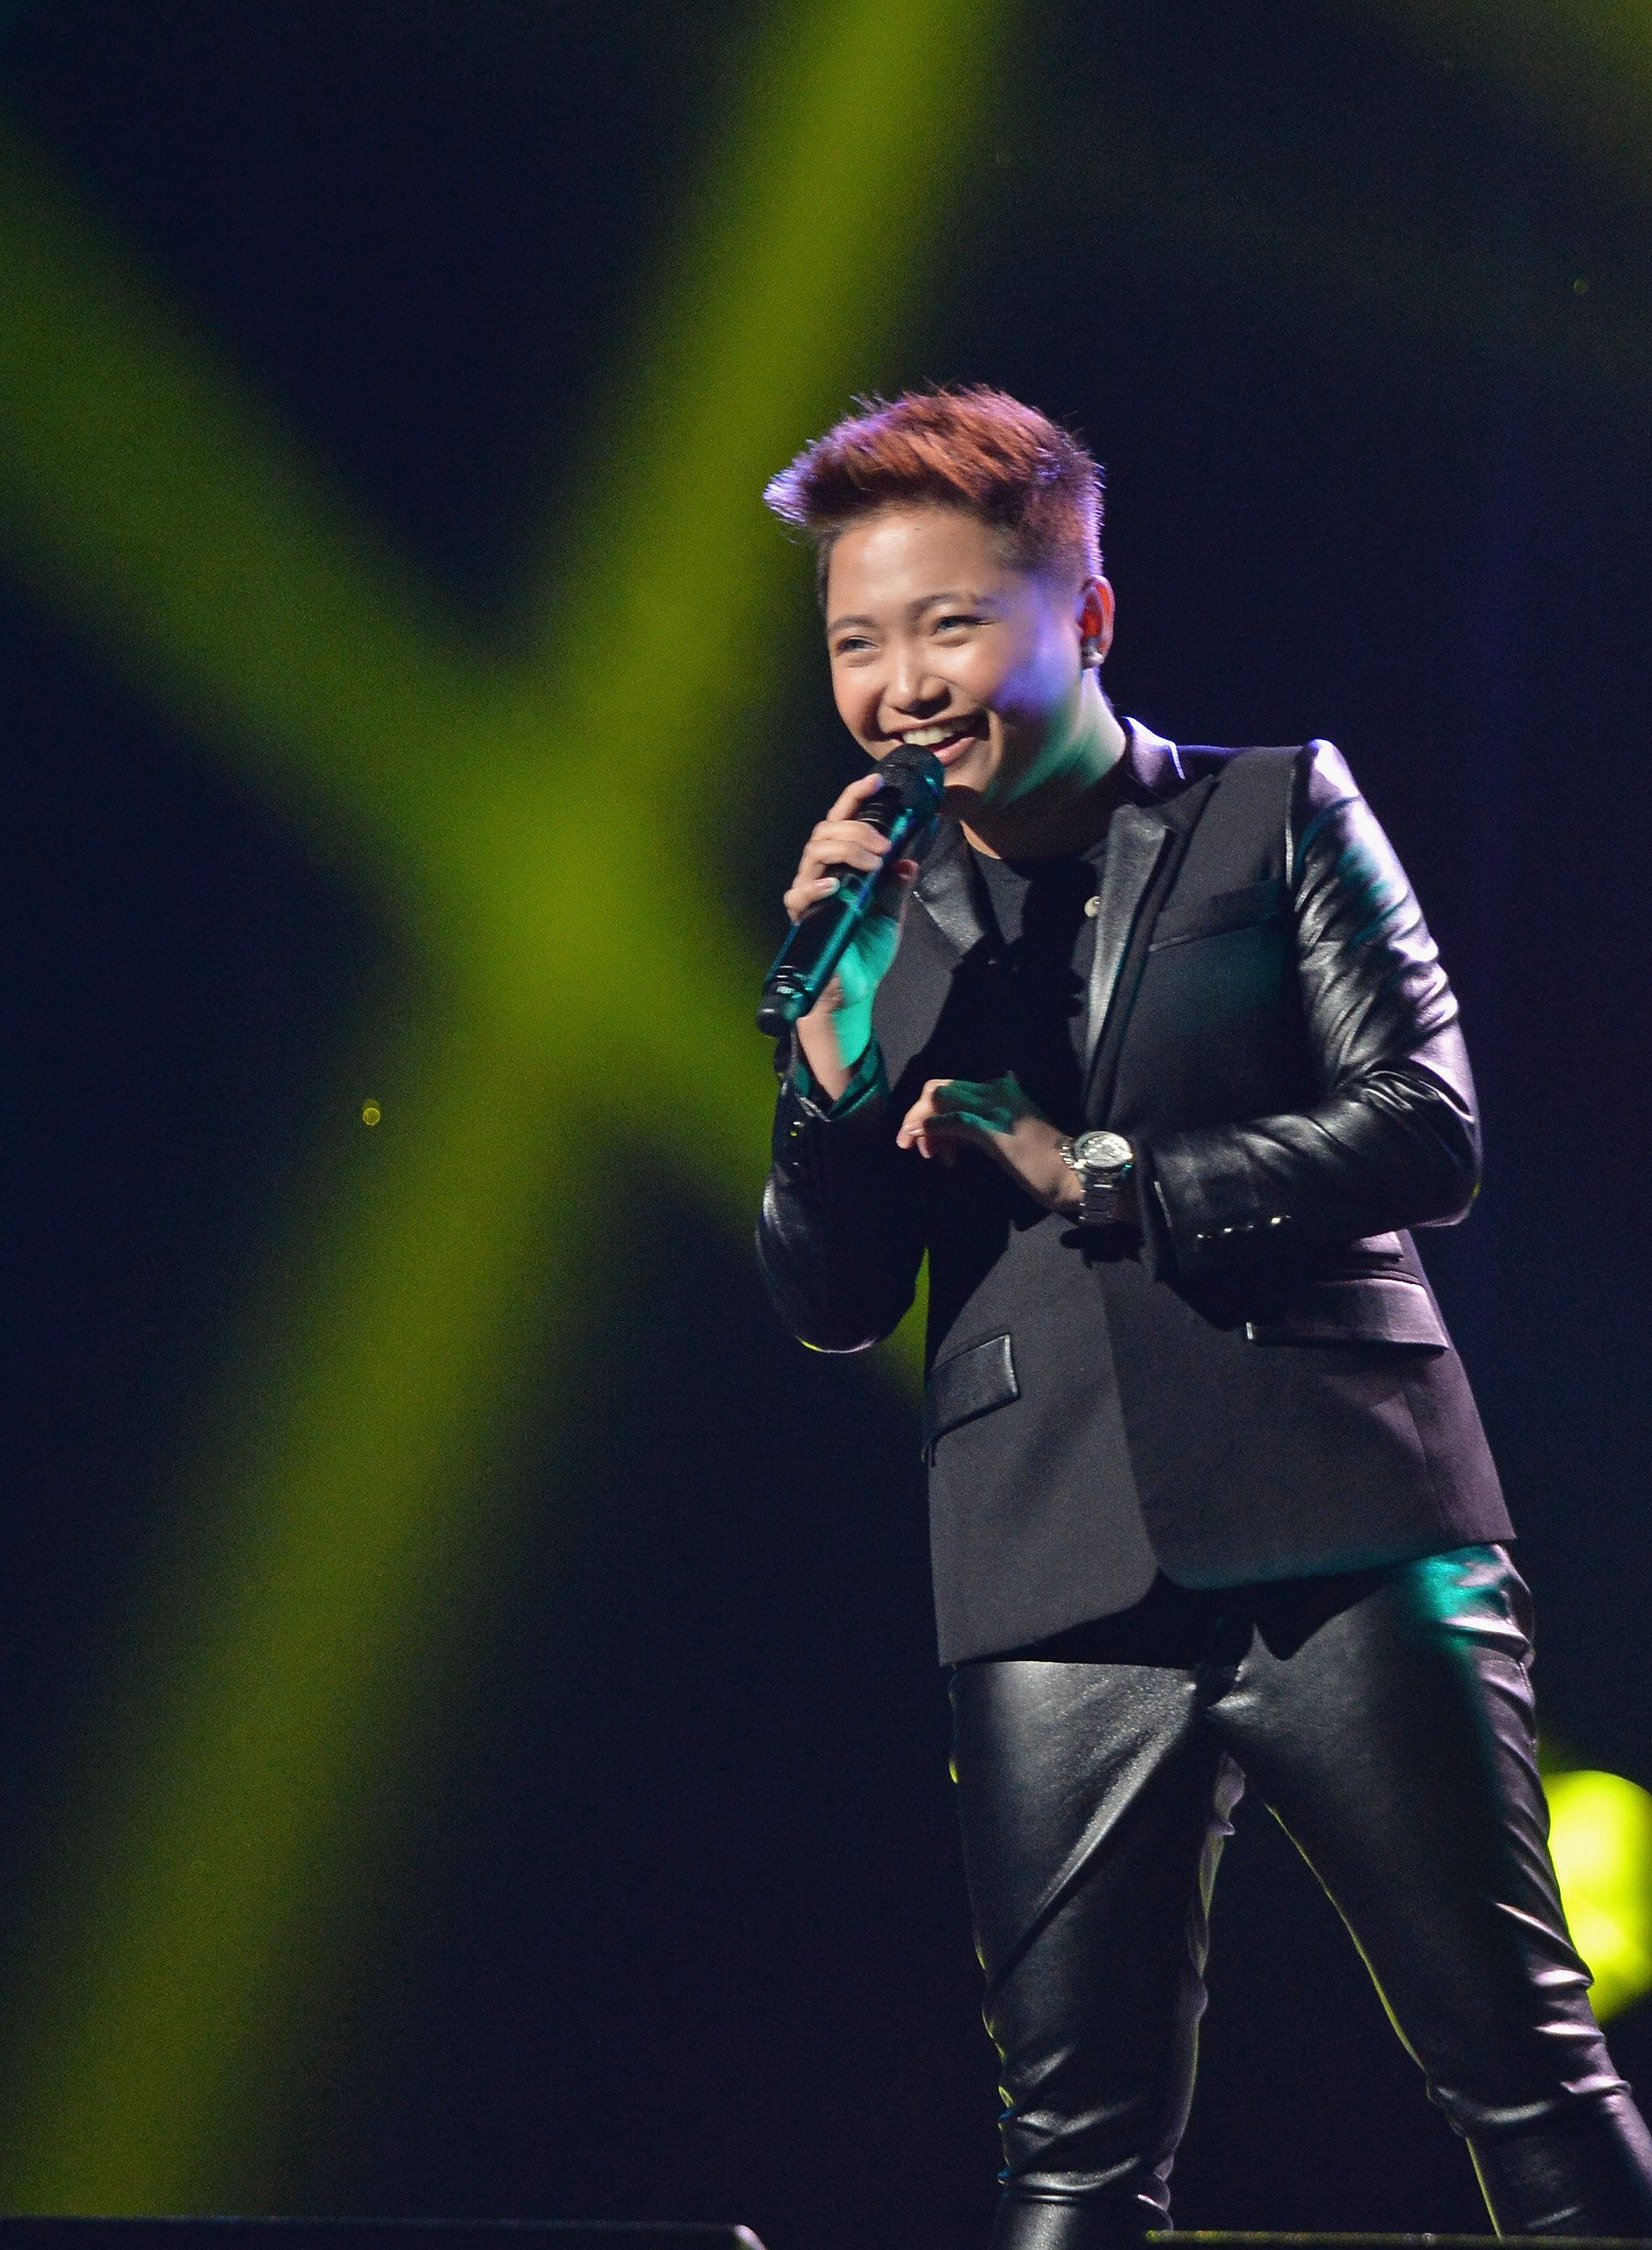 NEW YORK, NY - MARCH 11:  Singer Charice performs during the Pinoy Relief Benefit concert at Madison Square Garden on March 11, 2014 in New York City.  (Photo by Mike Coppola/Getty Images)